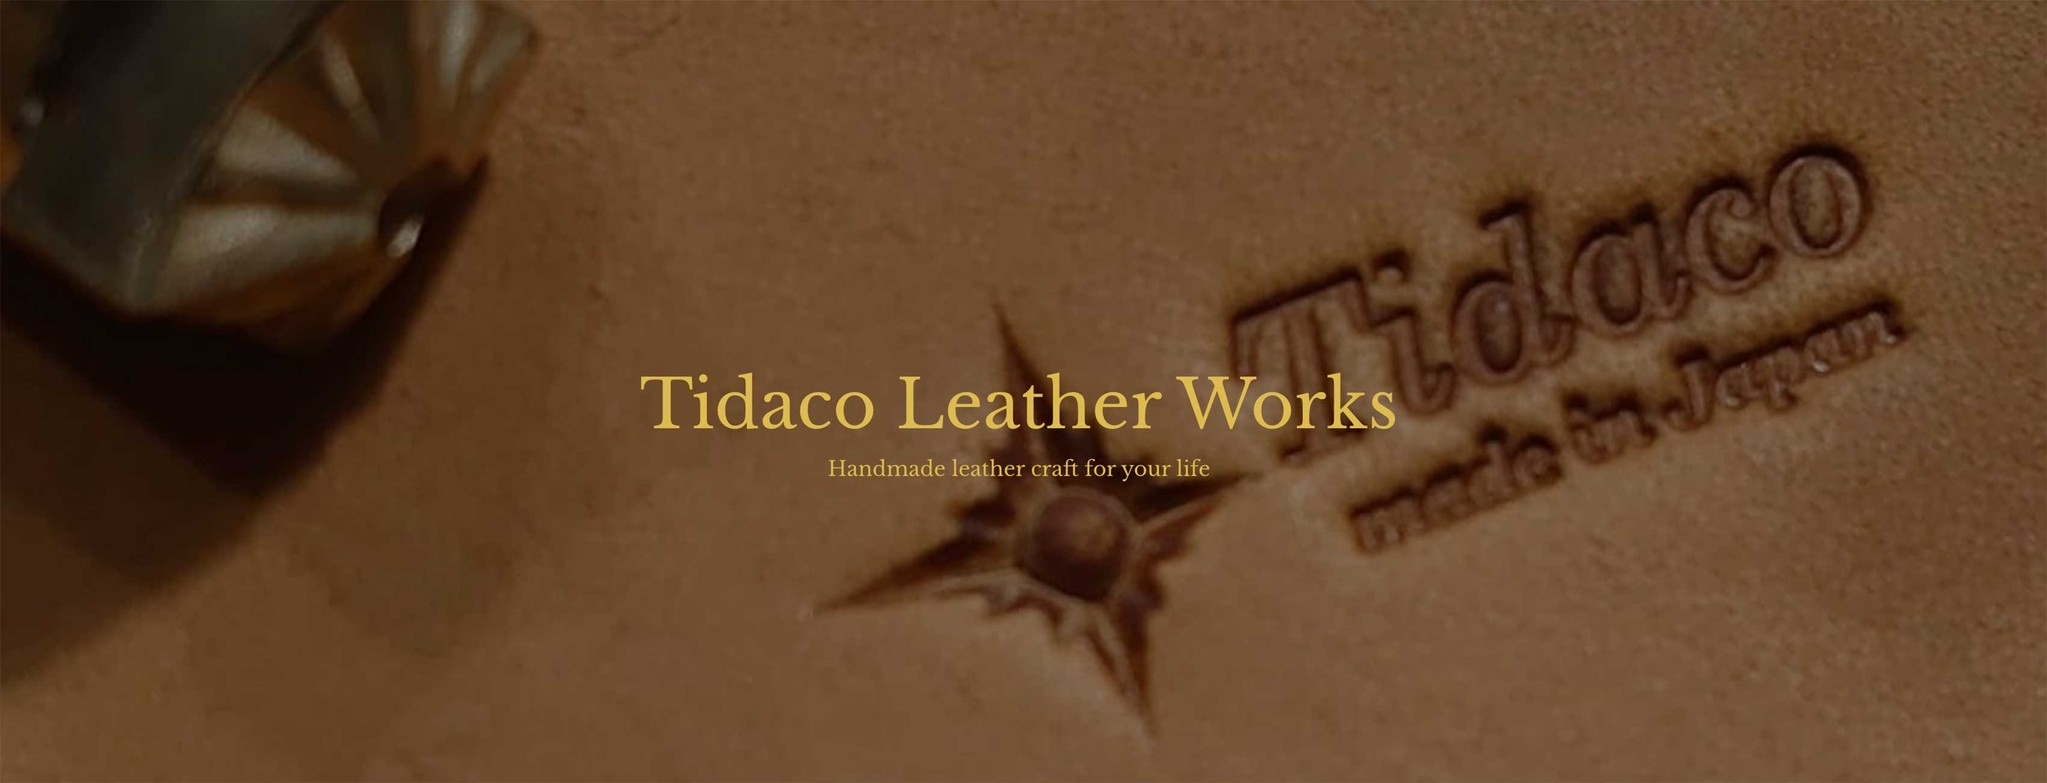 Tidaco Leather Works